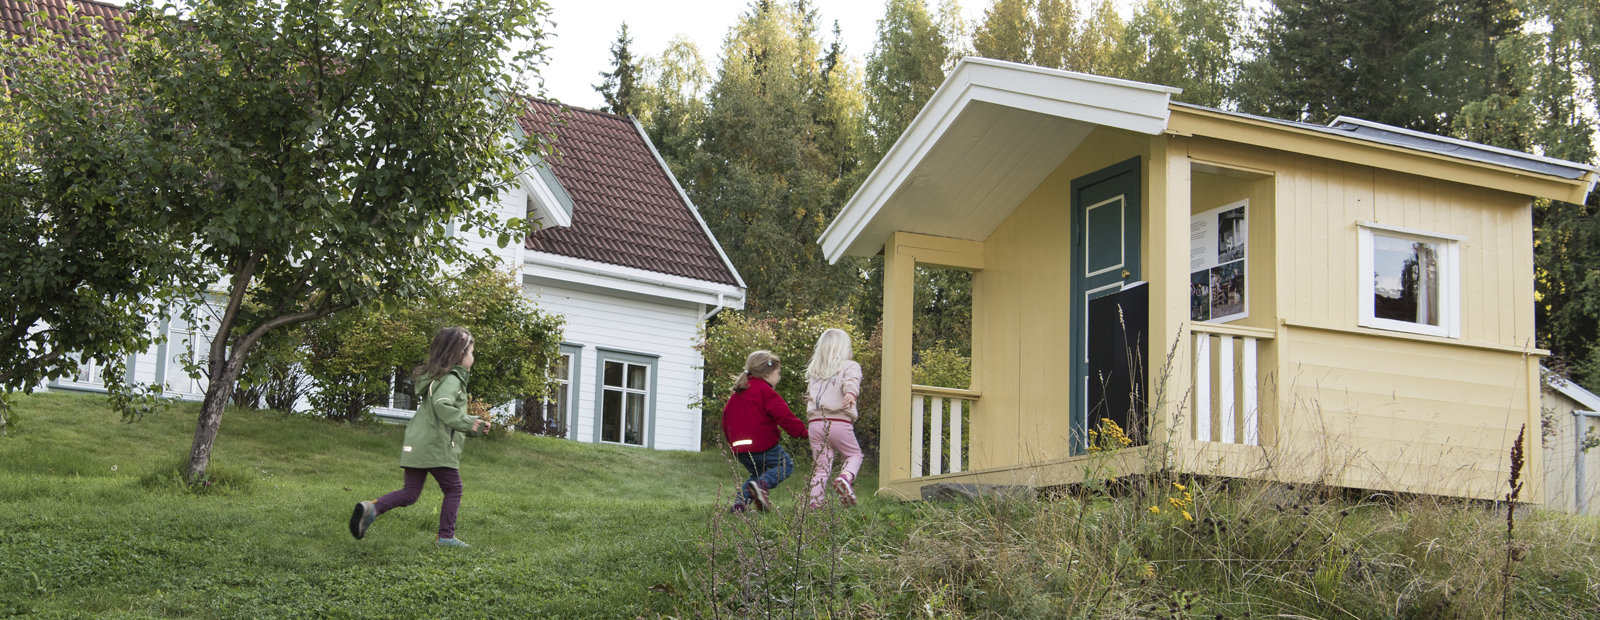 Children running to a yellow play house from the 1950s in the Residential area in the open-air museum in Lillehammer in Norway.